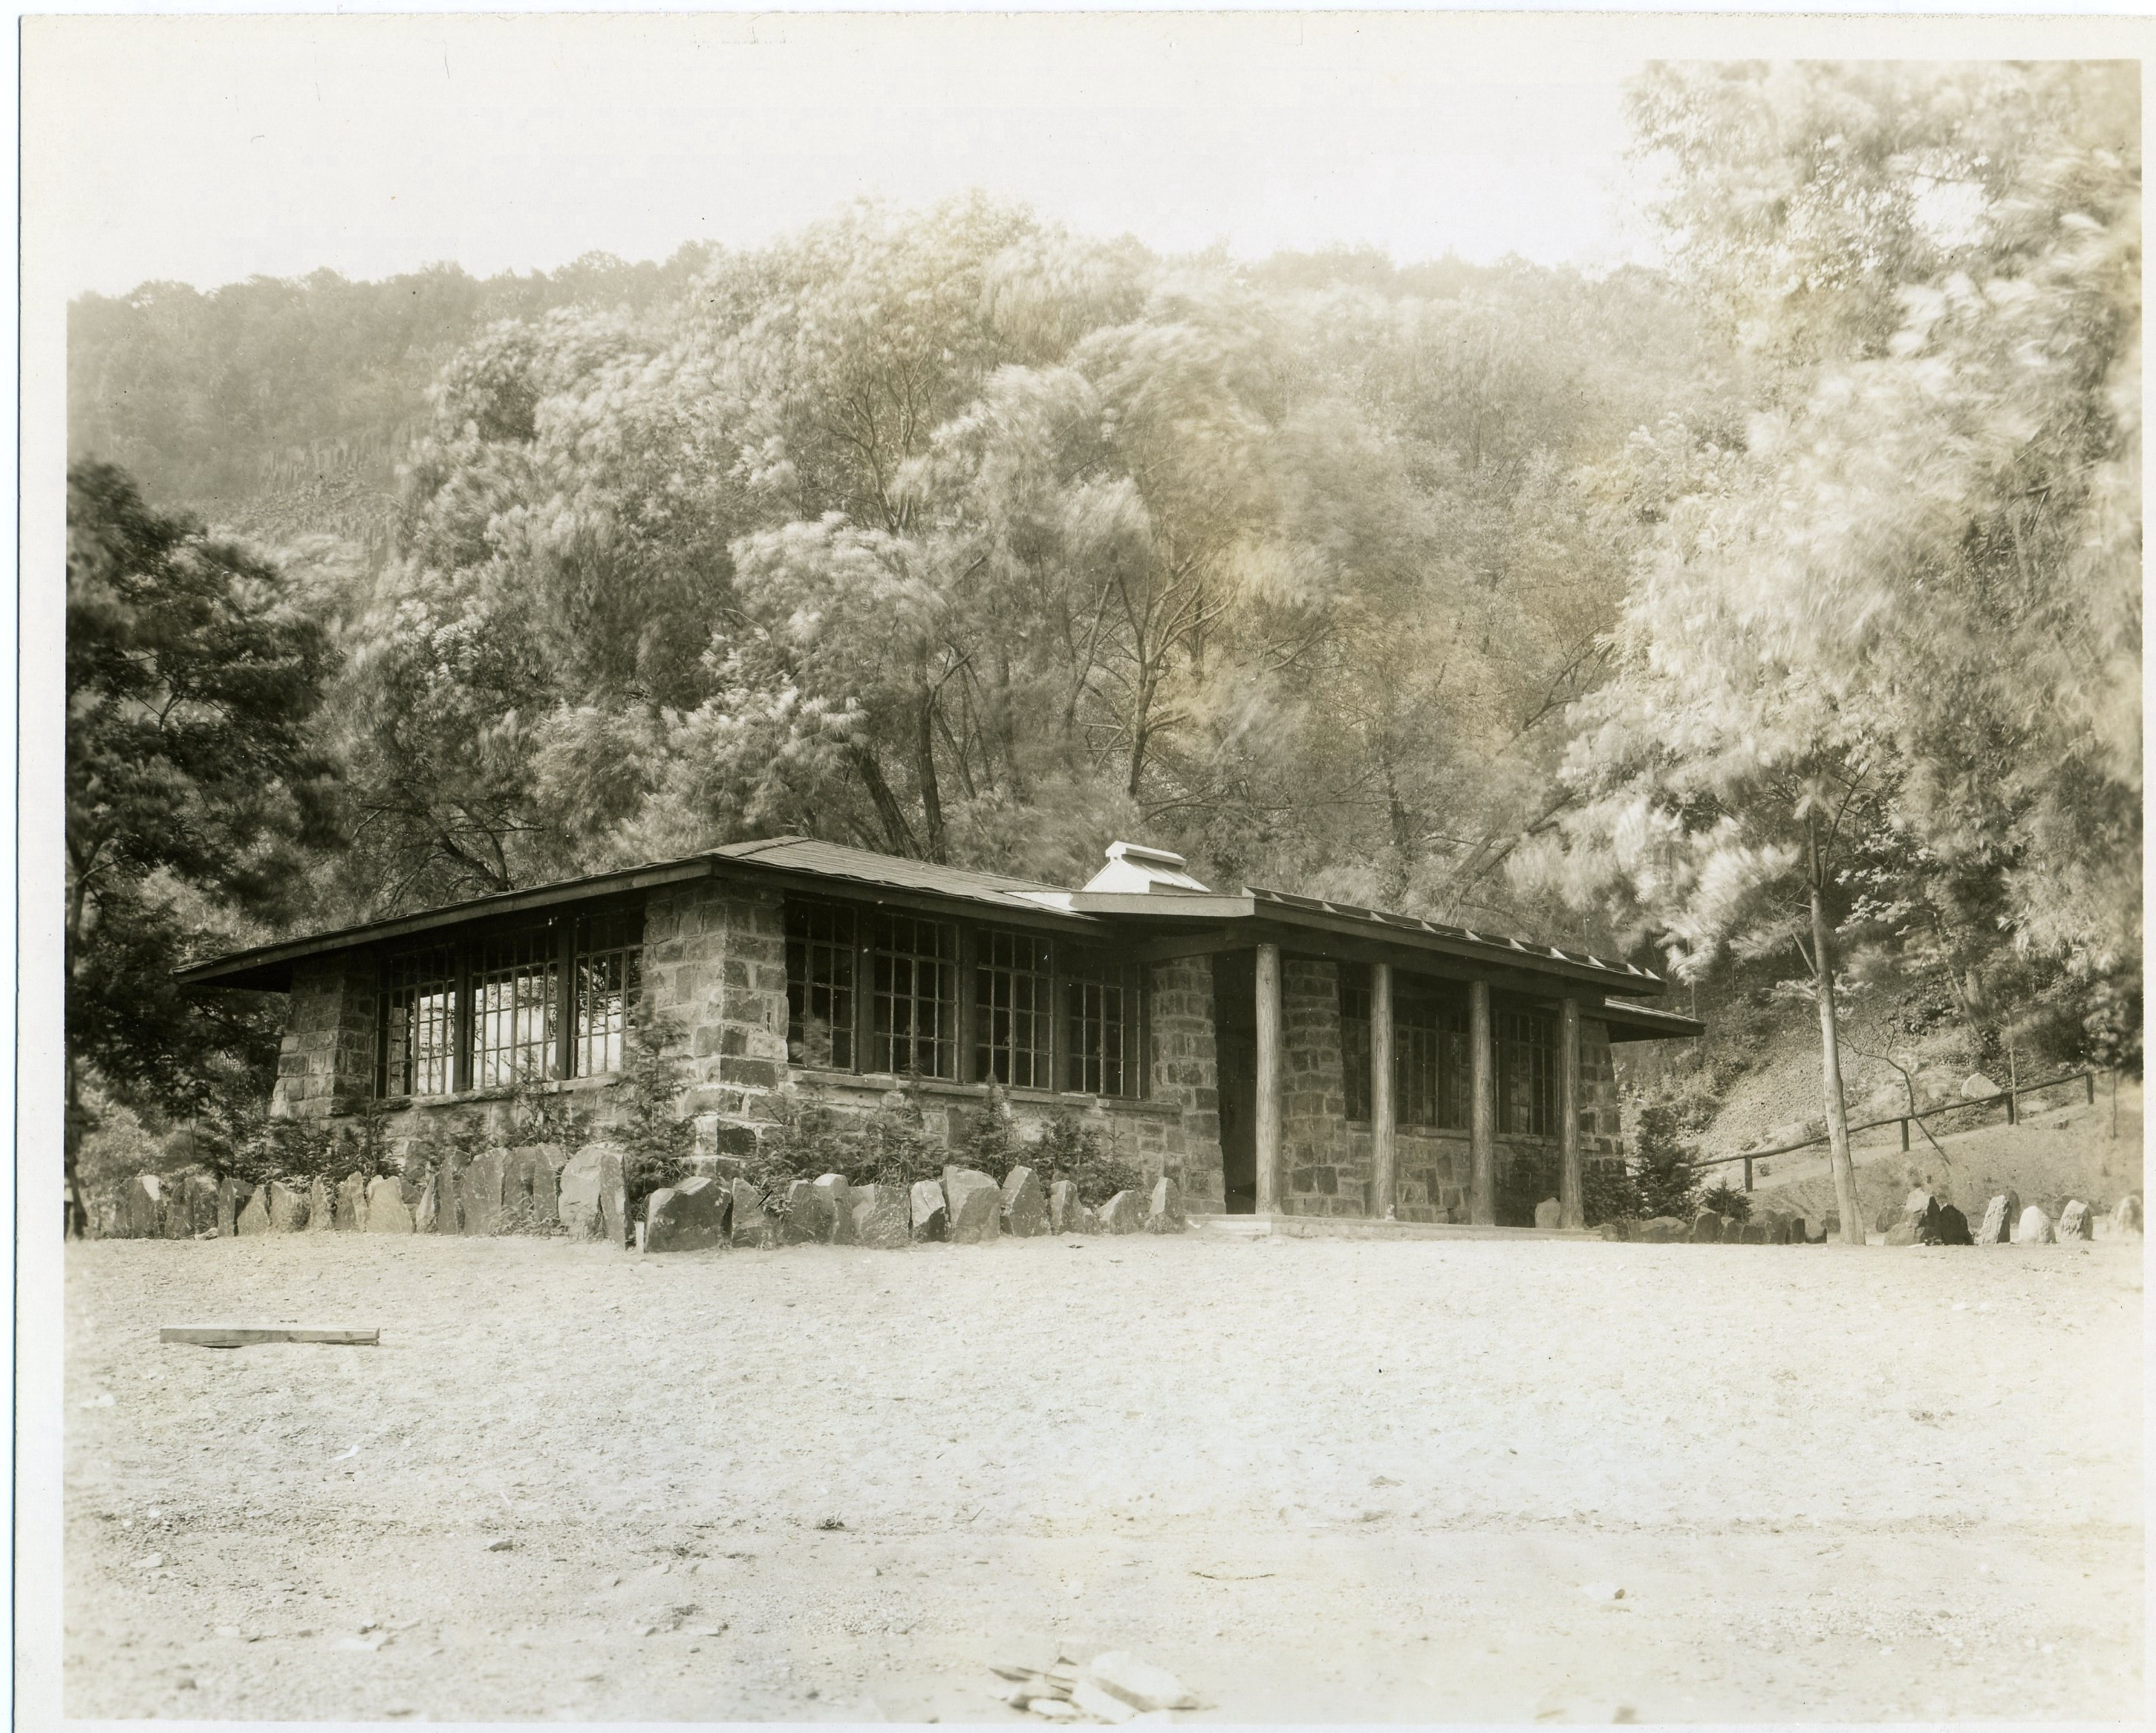 CCC Building at the Palisades Park 3